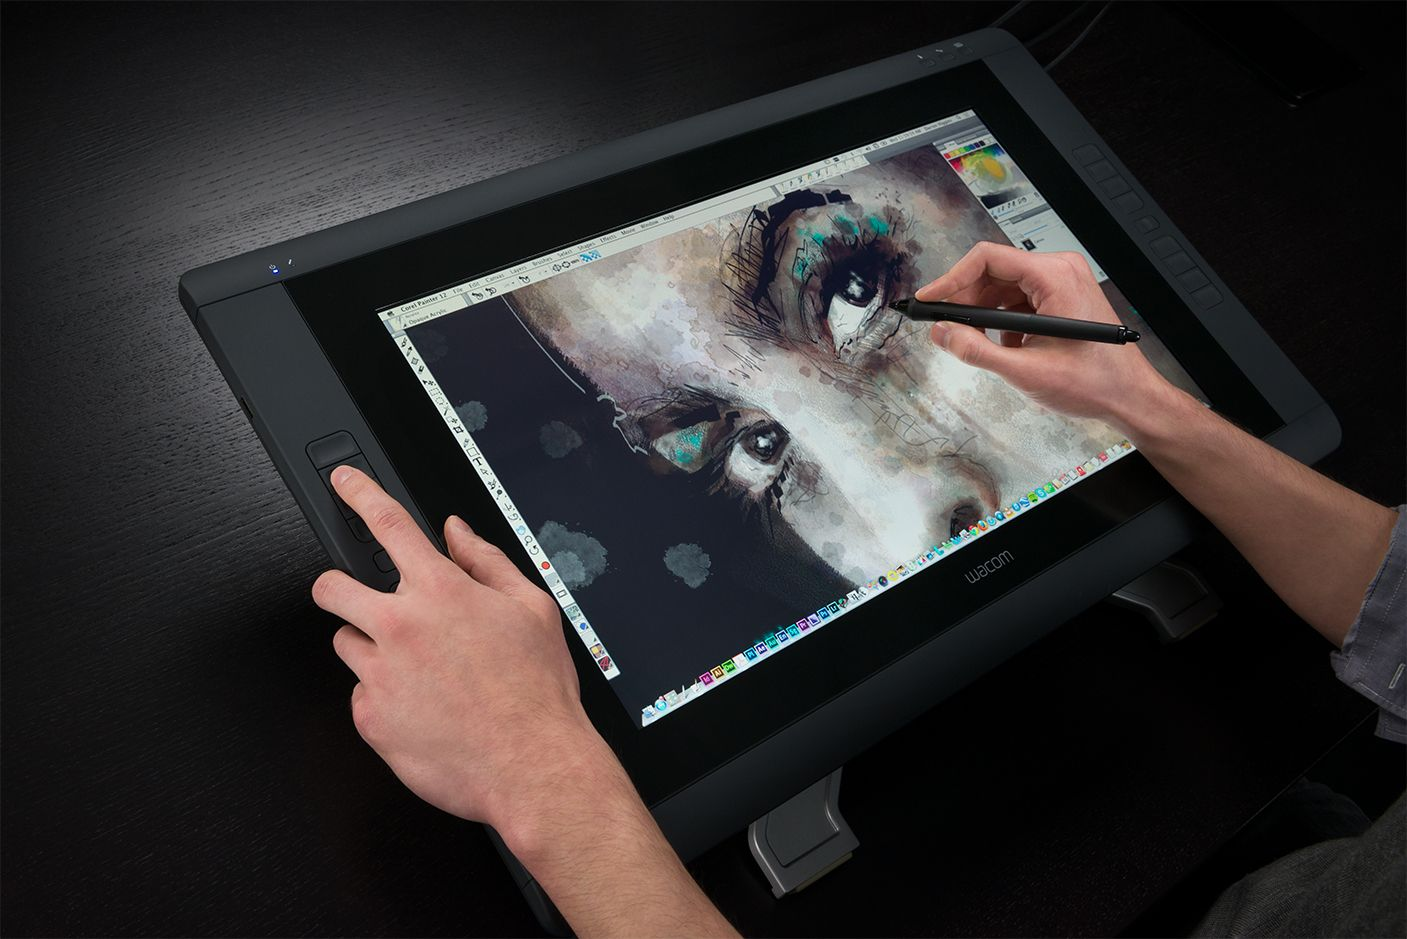 Cintiq 22hd Touch Professional Creative Display By Wacom Http